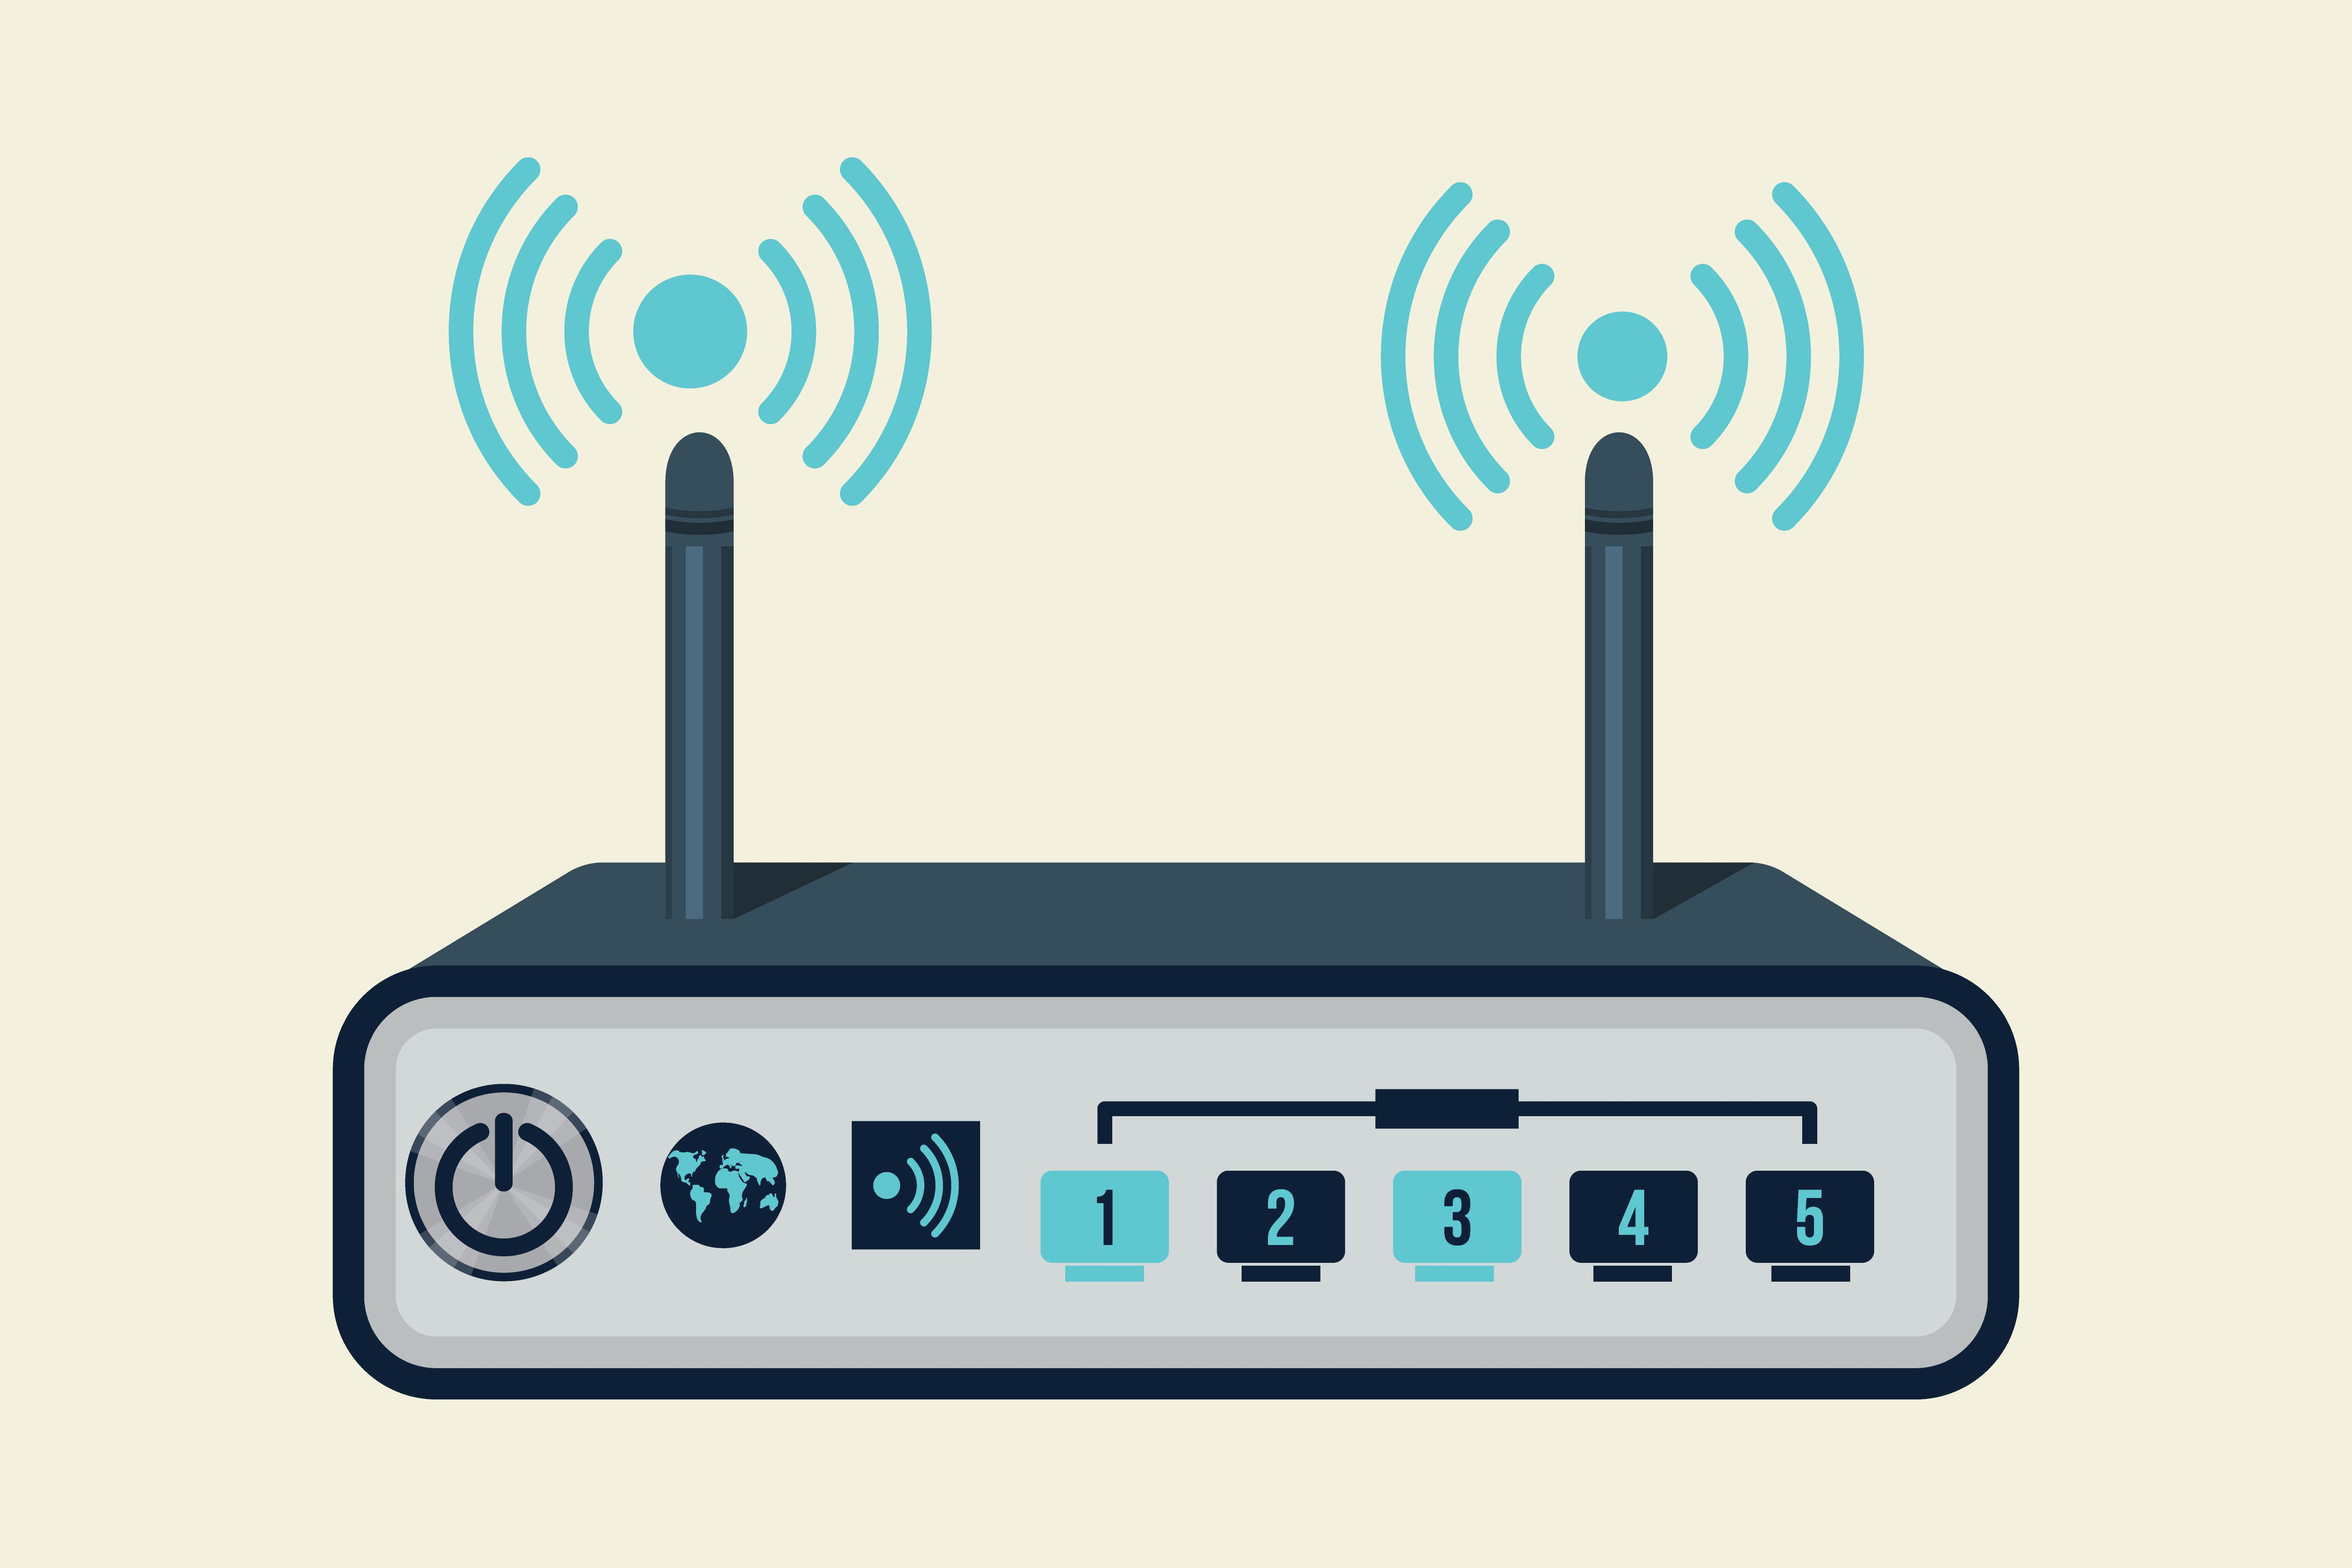 what is a router for computer networks?